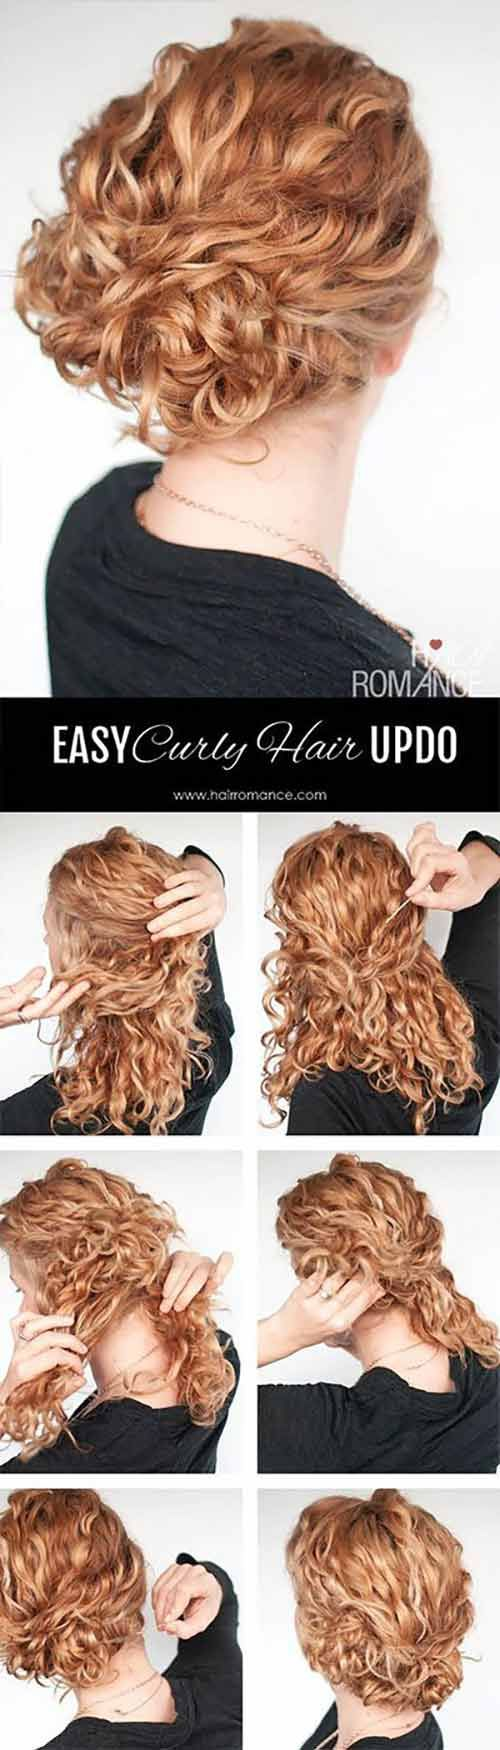 20 Incredibly Stunning Diy Updos For Curly Hair Curly Hair Styles Easy Curly Updo Easy Updo Hairstyles Tutorials